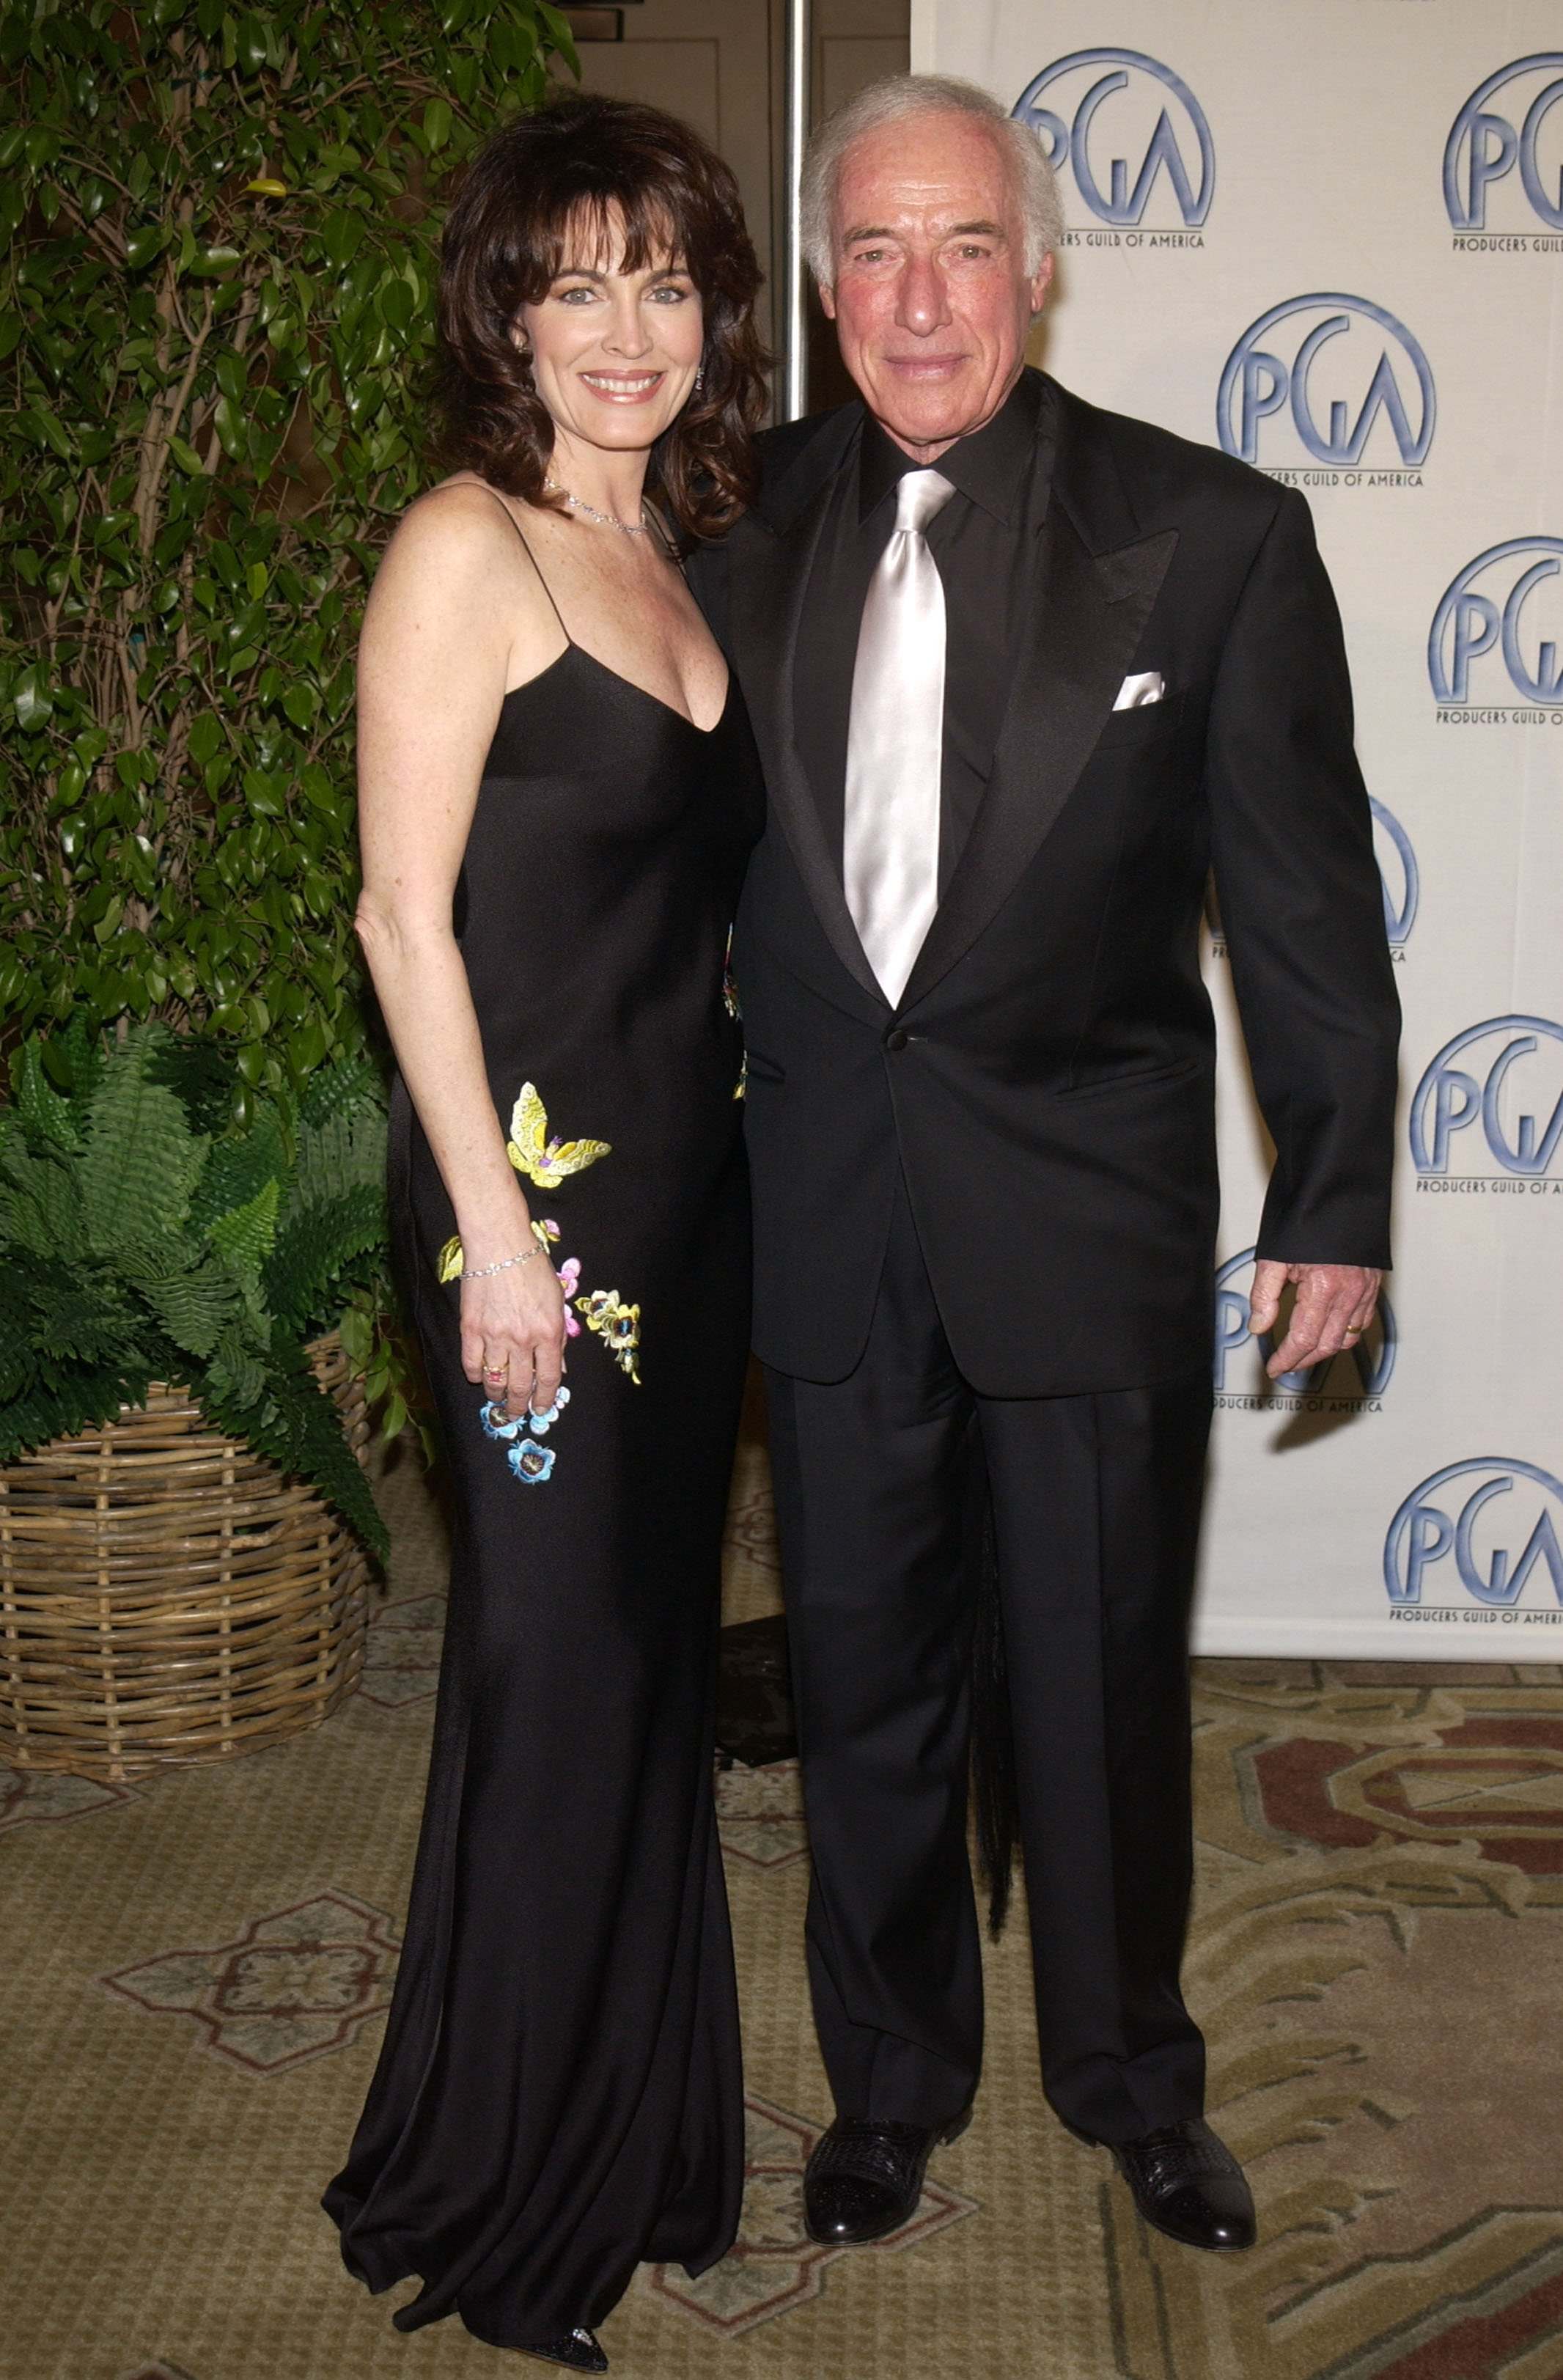 Cynthia Sikes and Bud Yorkin during 14th Annual Producers Guild of America Awards at Century Plaza Hotel in Los Angeles | Photo: Getty Images